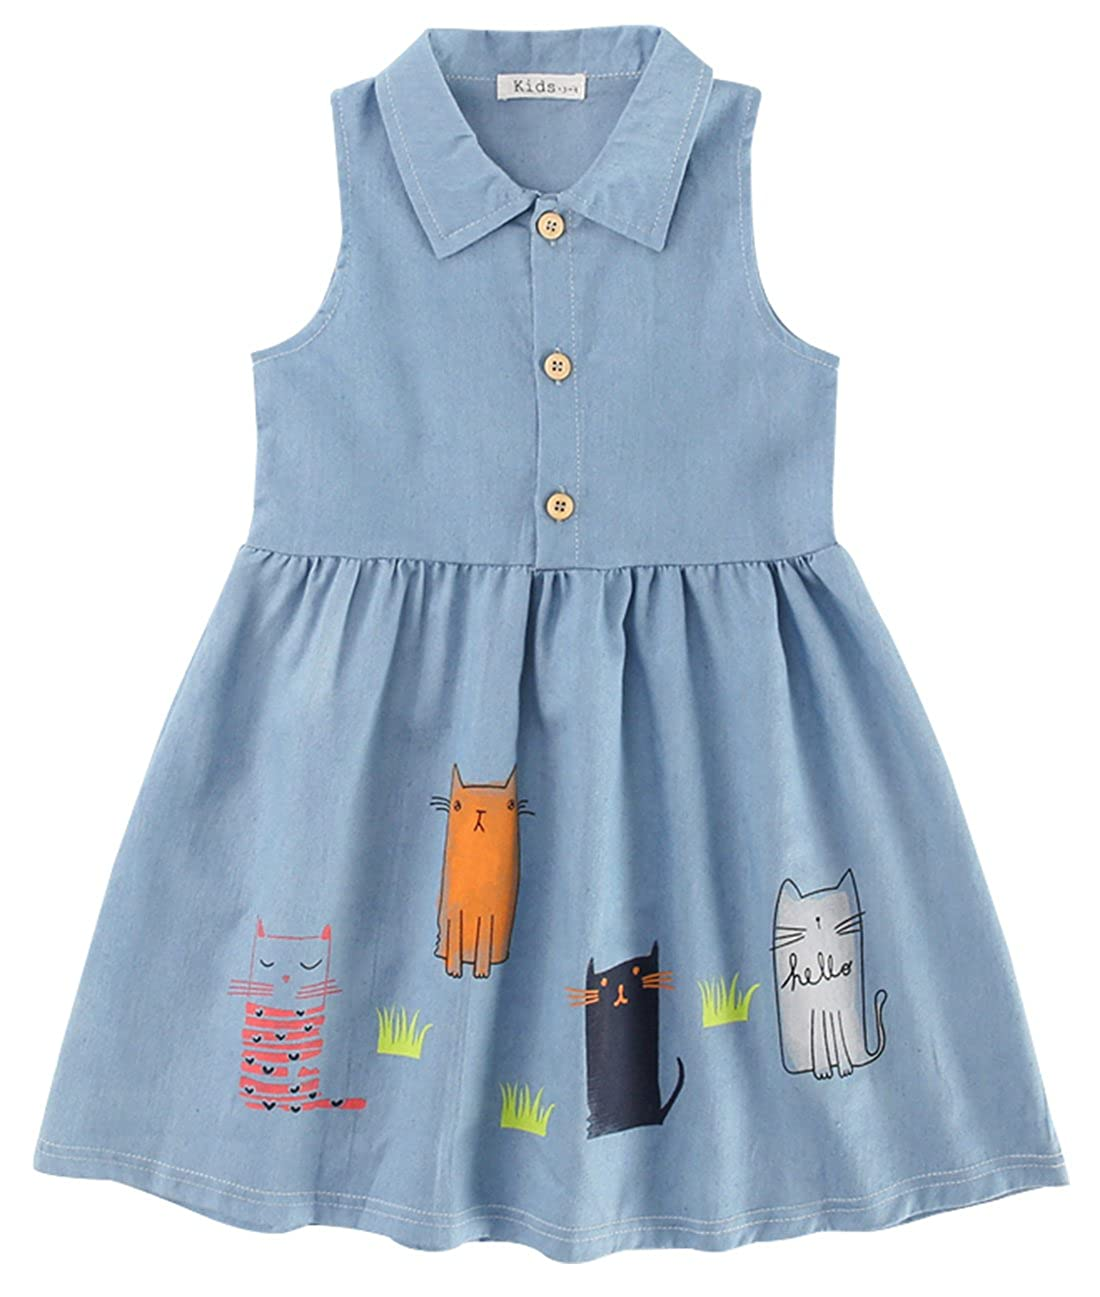 7bdfcc372d523 100% cotton fabric,breathable and comfortable to wear in summer. and better  protecting the skin of girls. Special pattern and design, cartoon animal  dress, ...